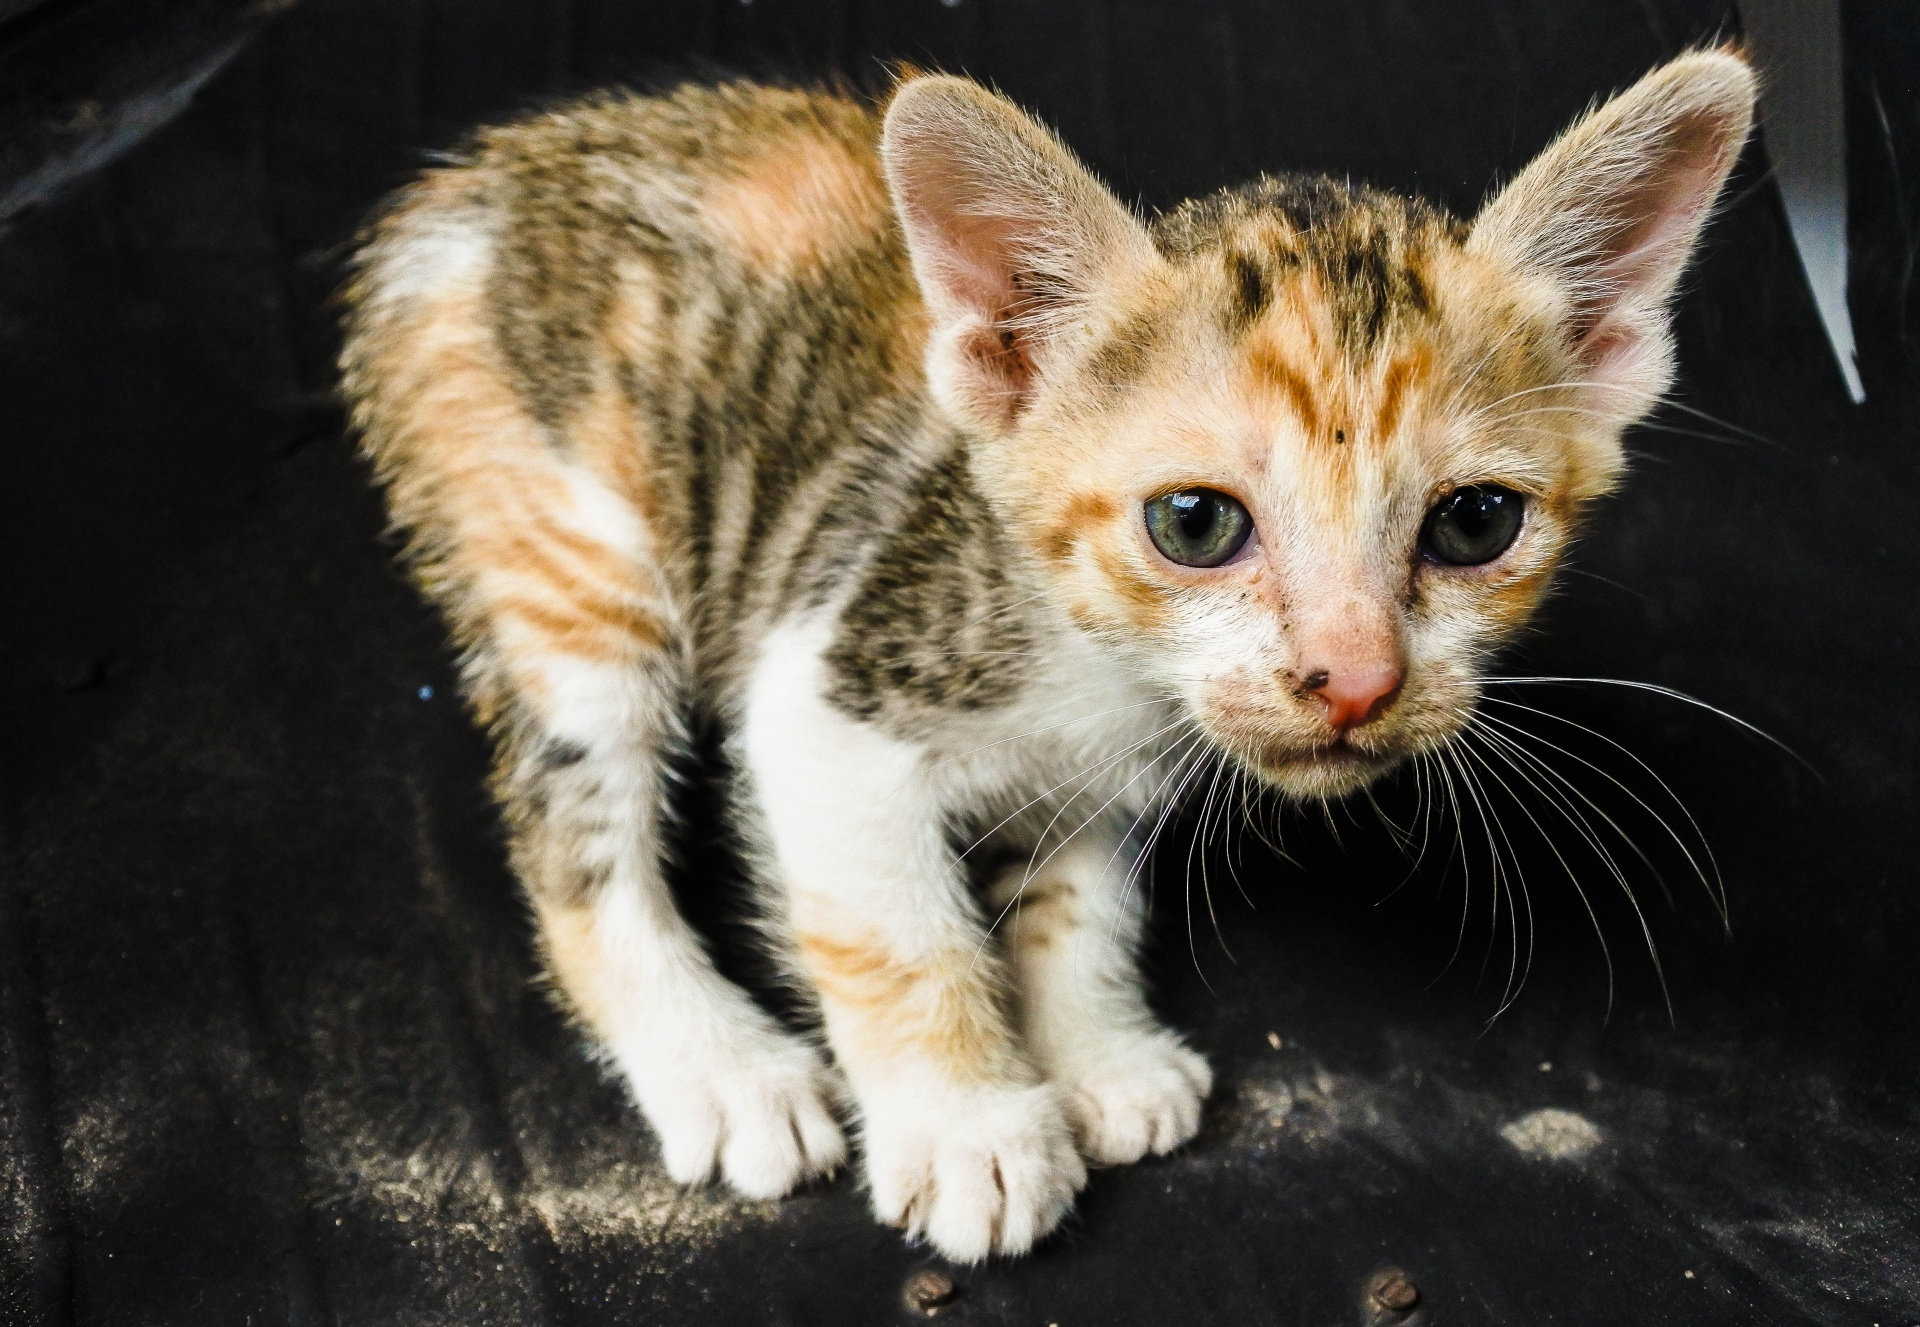 Cutest Kittens Cute Cat Free Stock Photo Public Domain Pictures